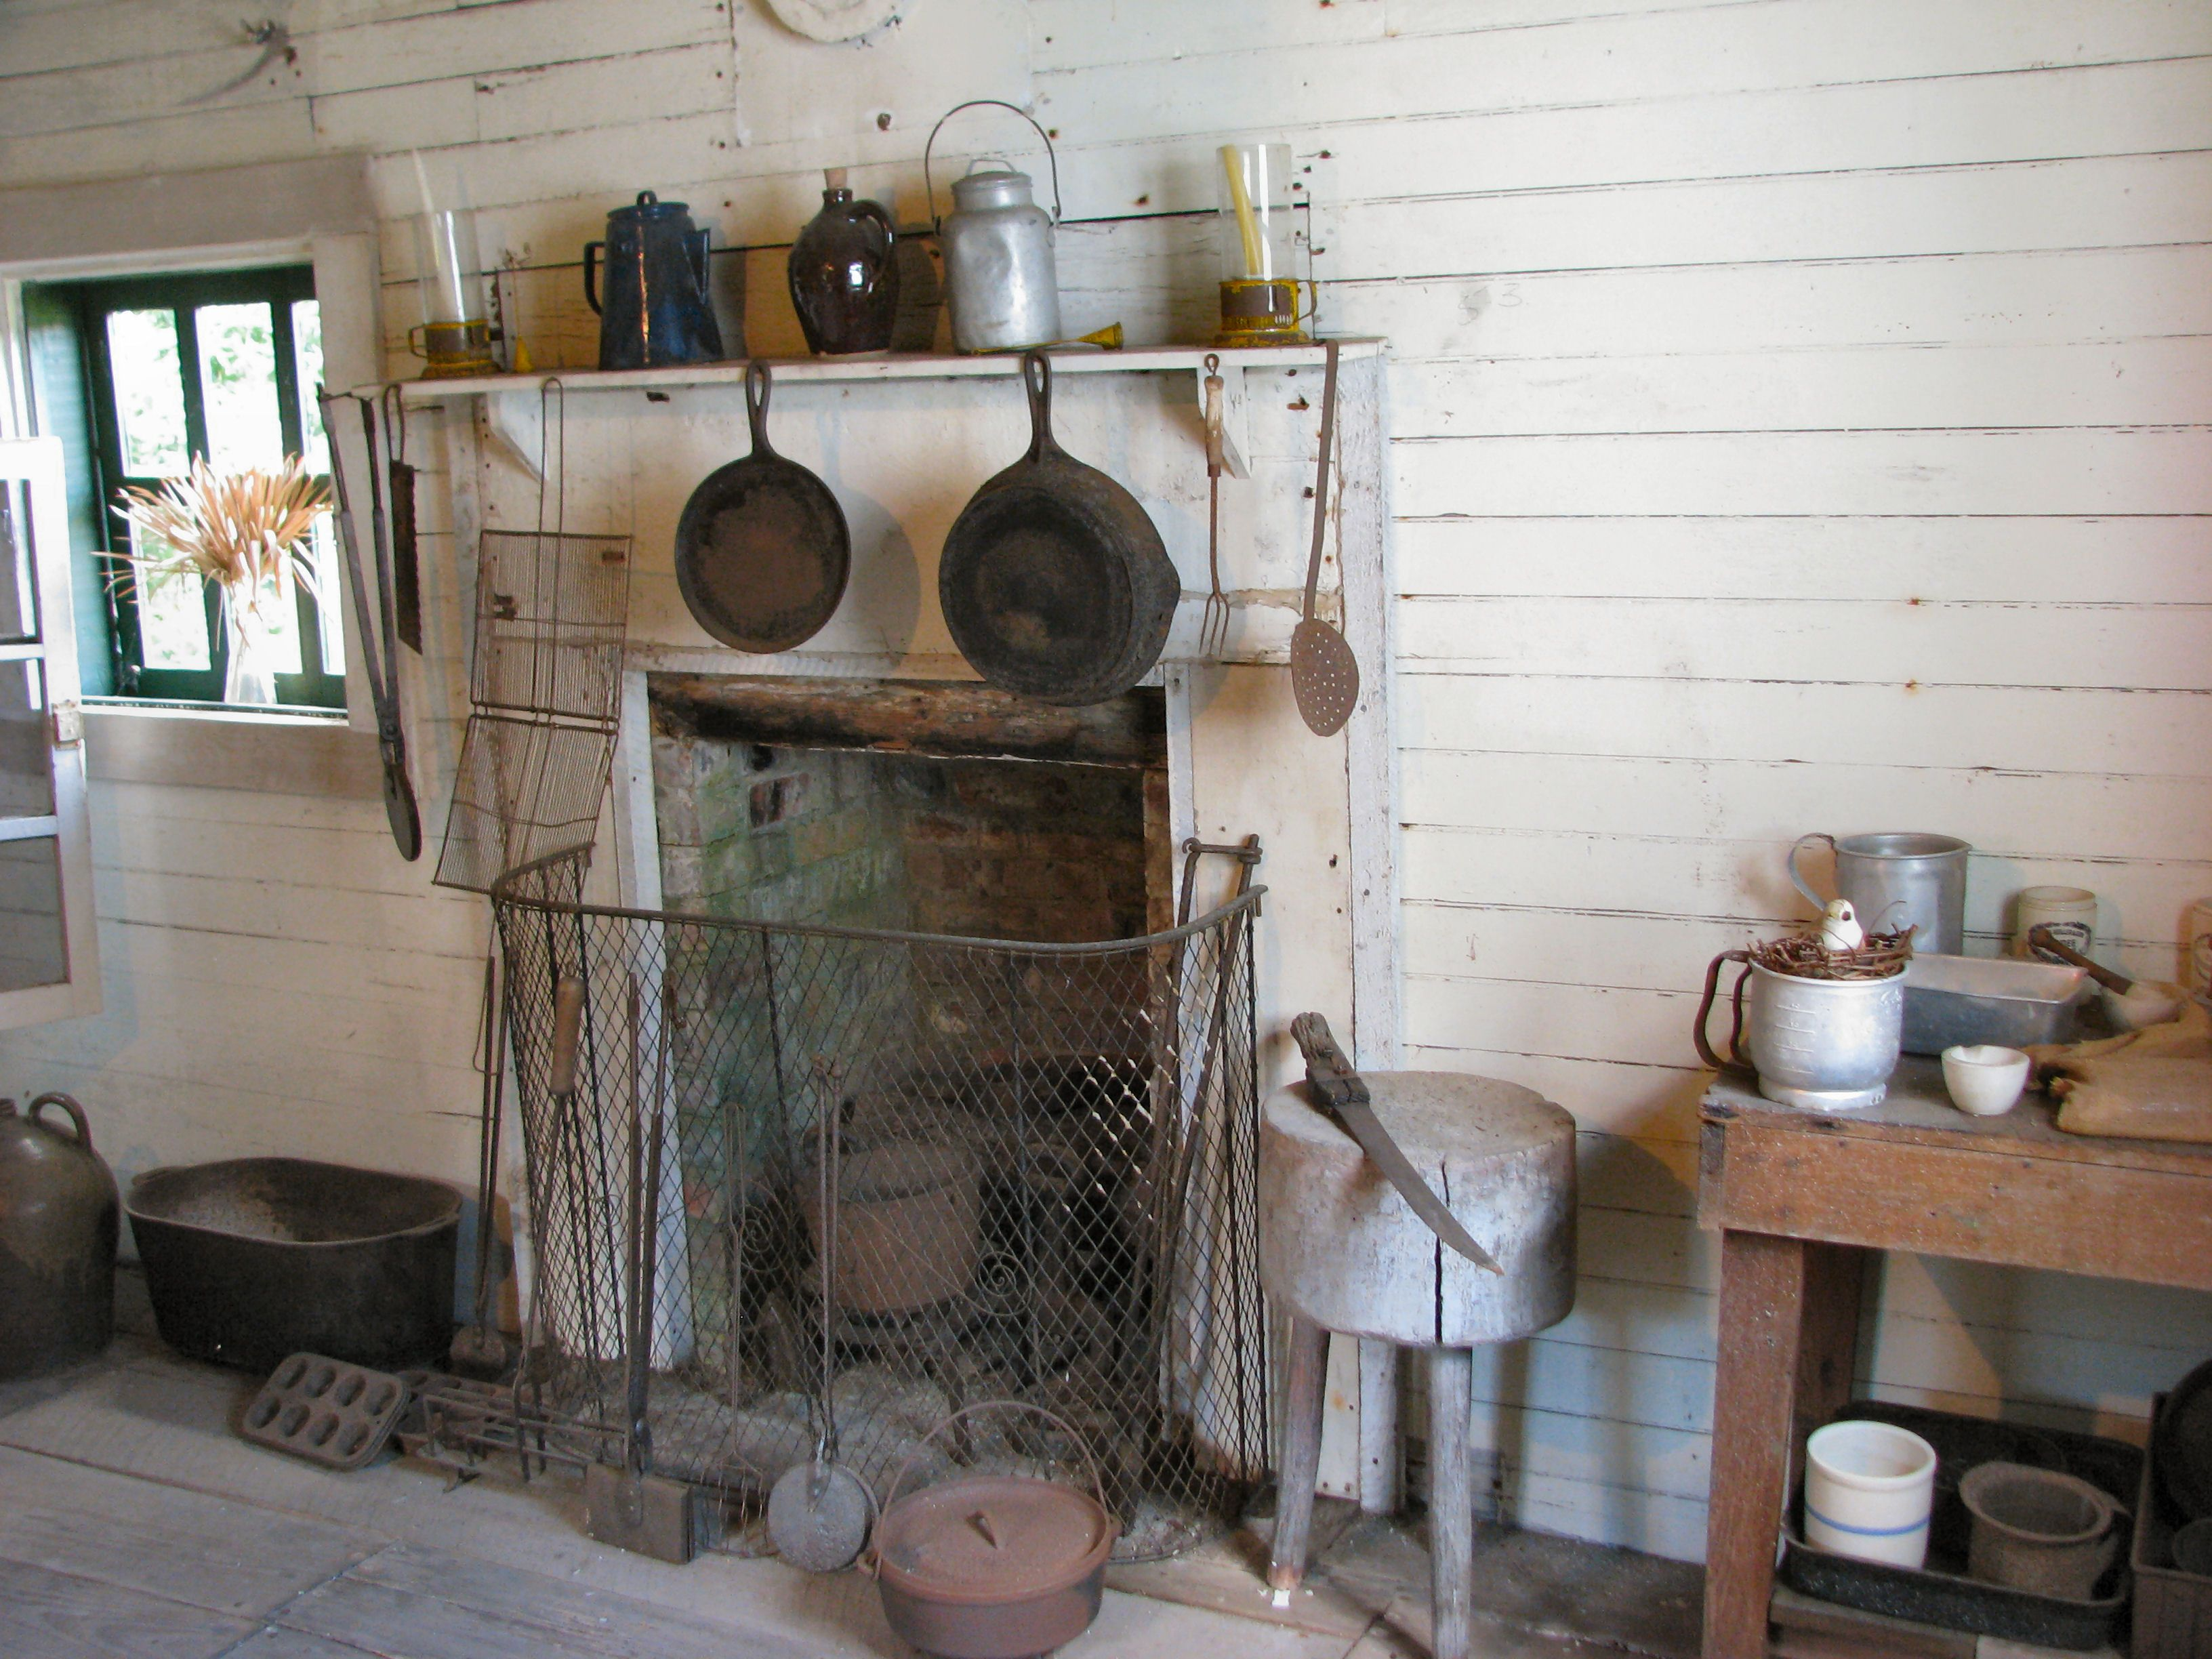 Pin by Cathy Foster Lemar on Inside Country fireplace